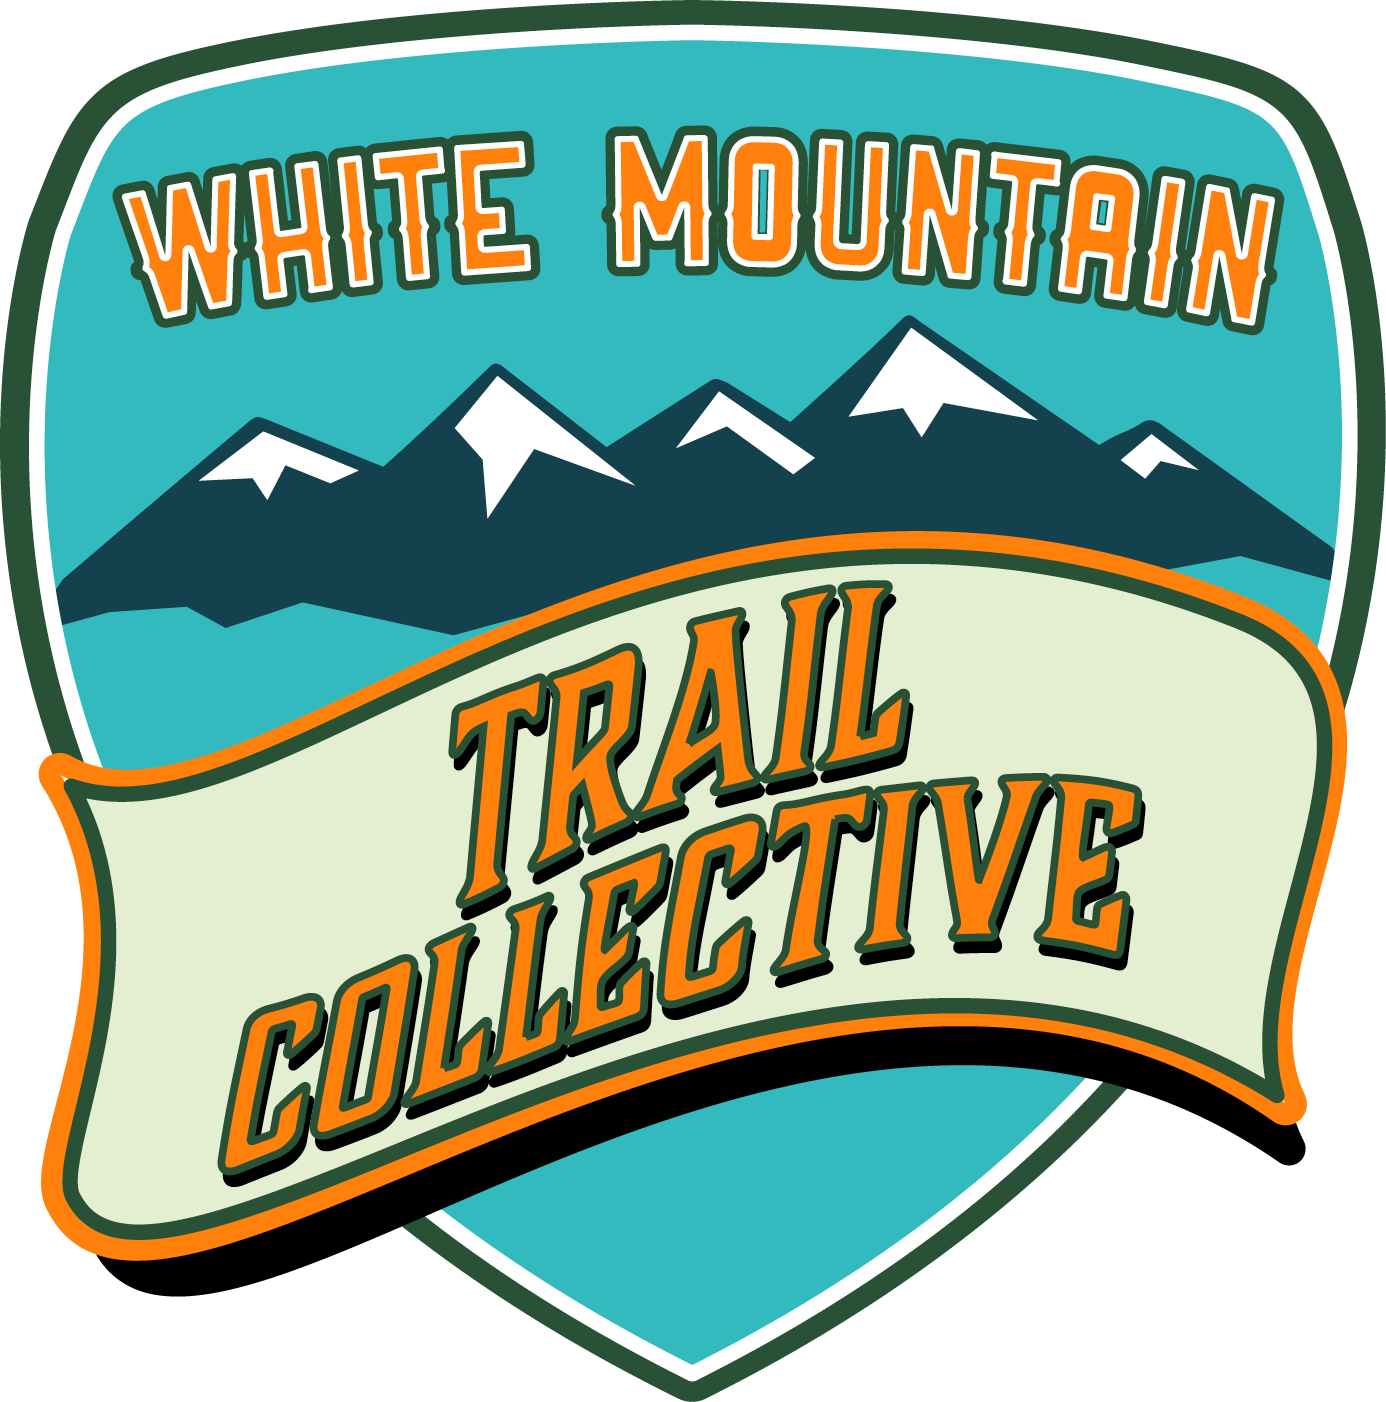 White Mountain Trail Collective logo